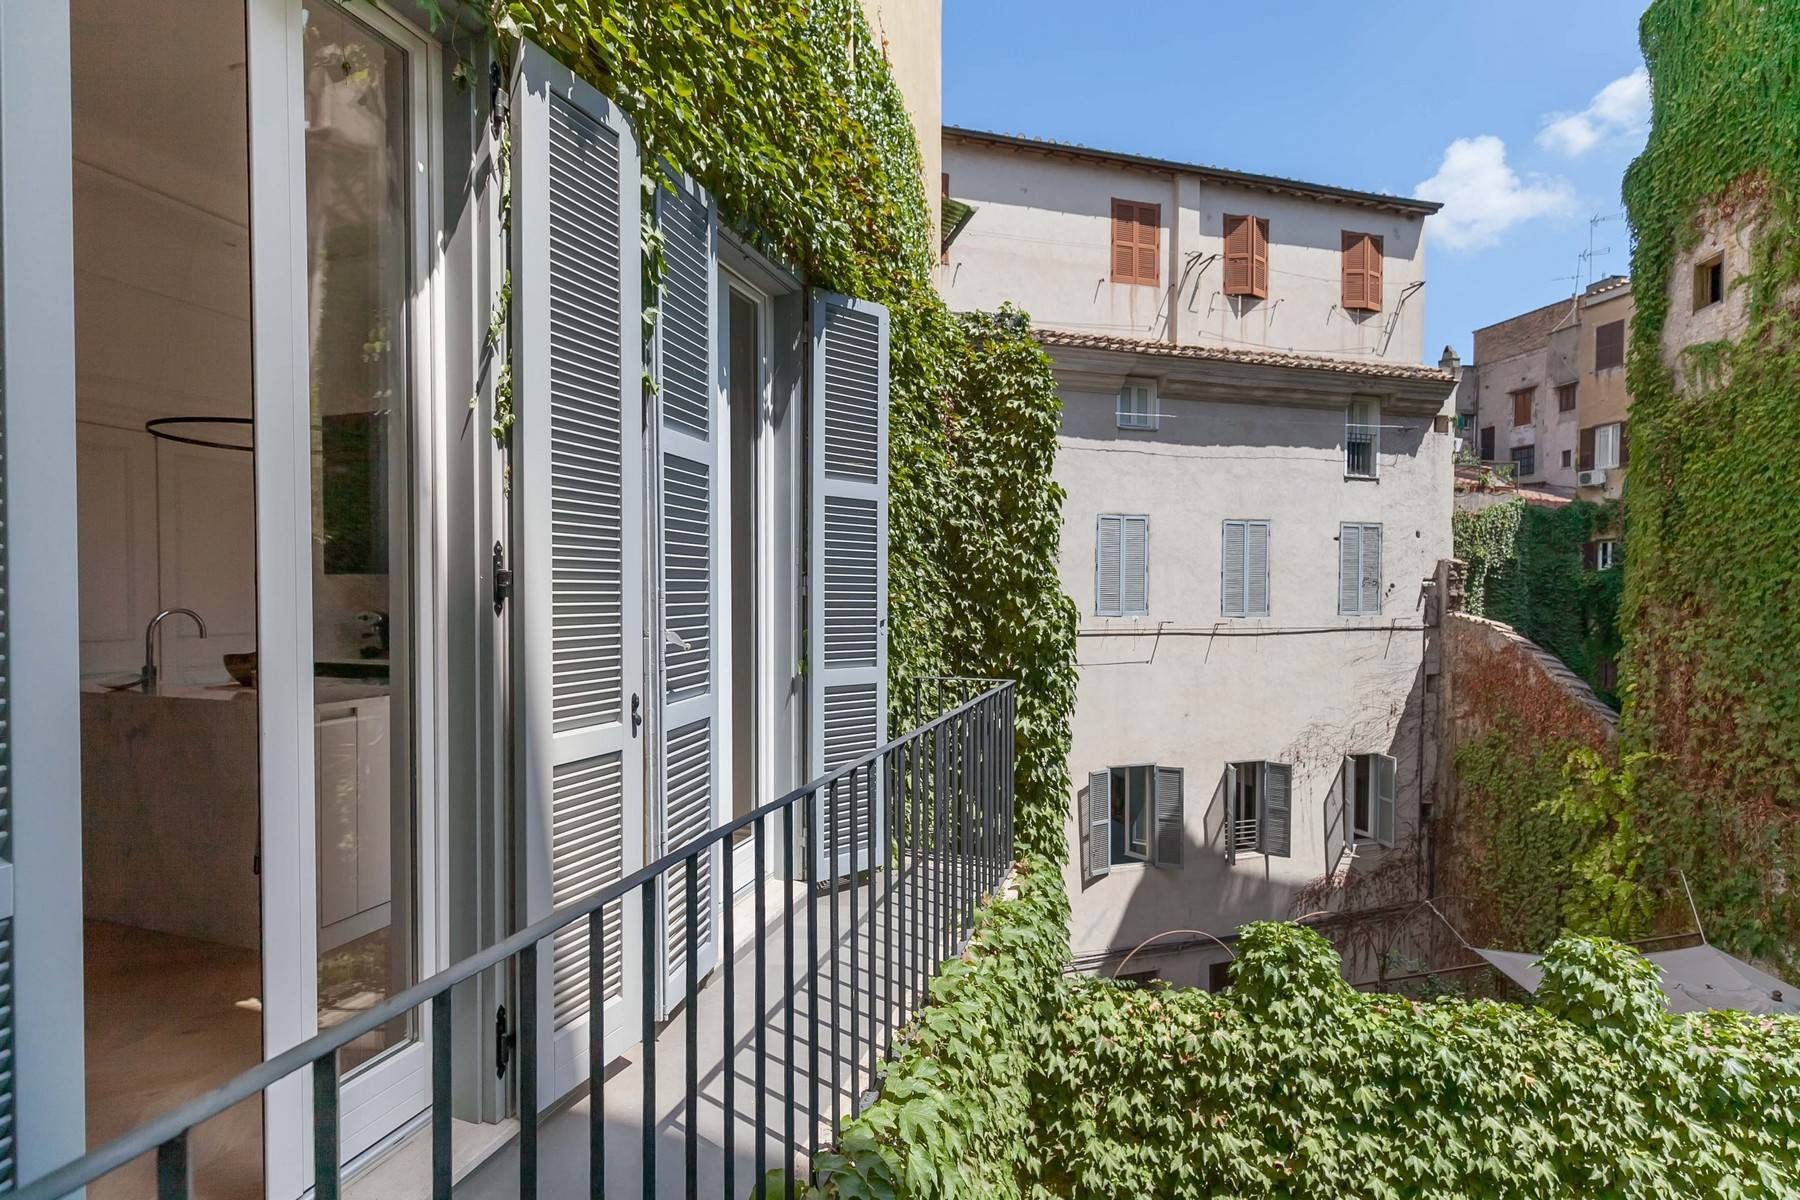 Apartments 为 出租 在 Charming apartment in the heart of Rome 罗马, 罗马 意大利